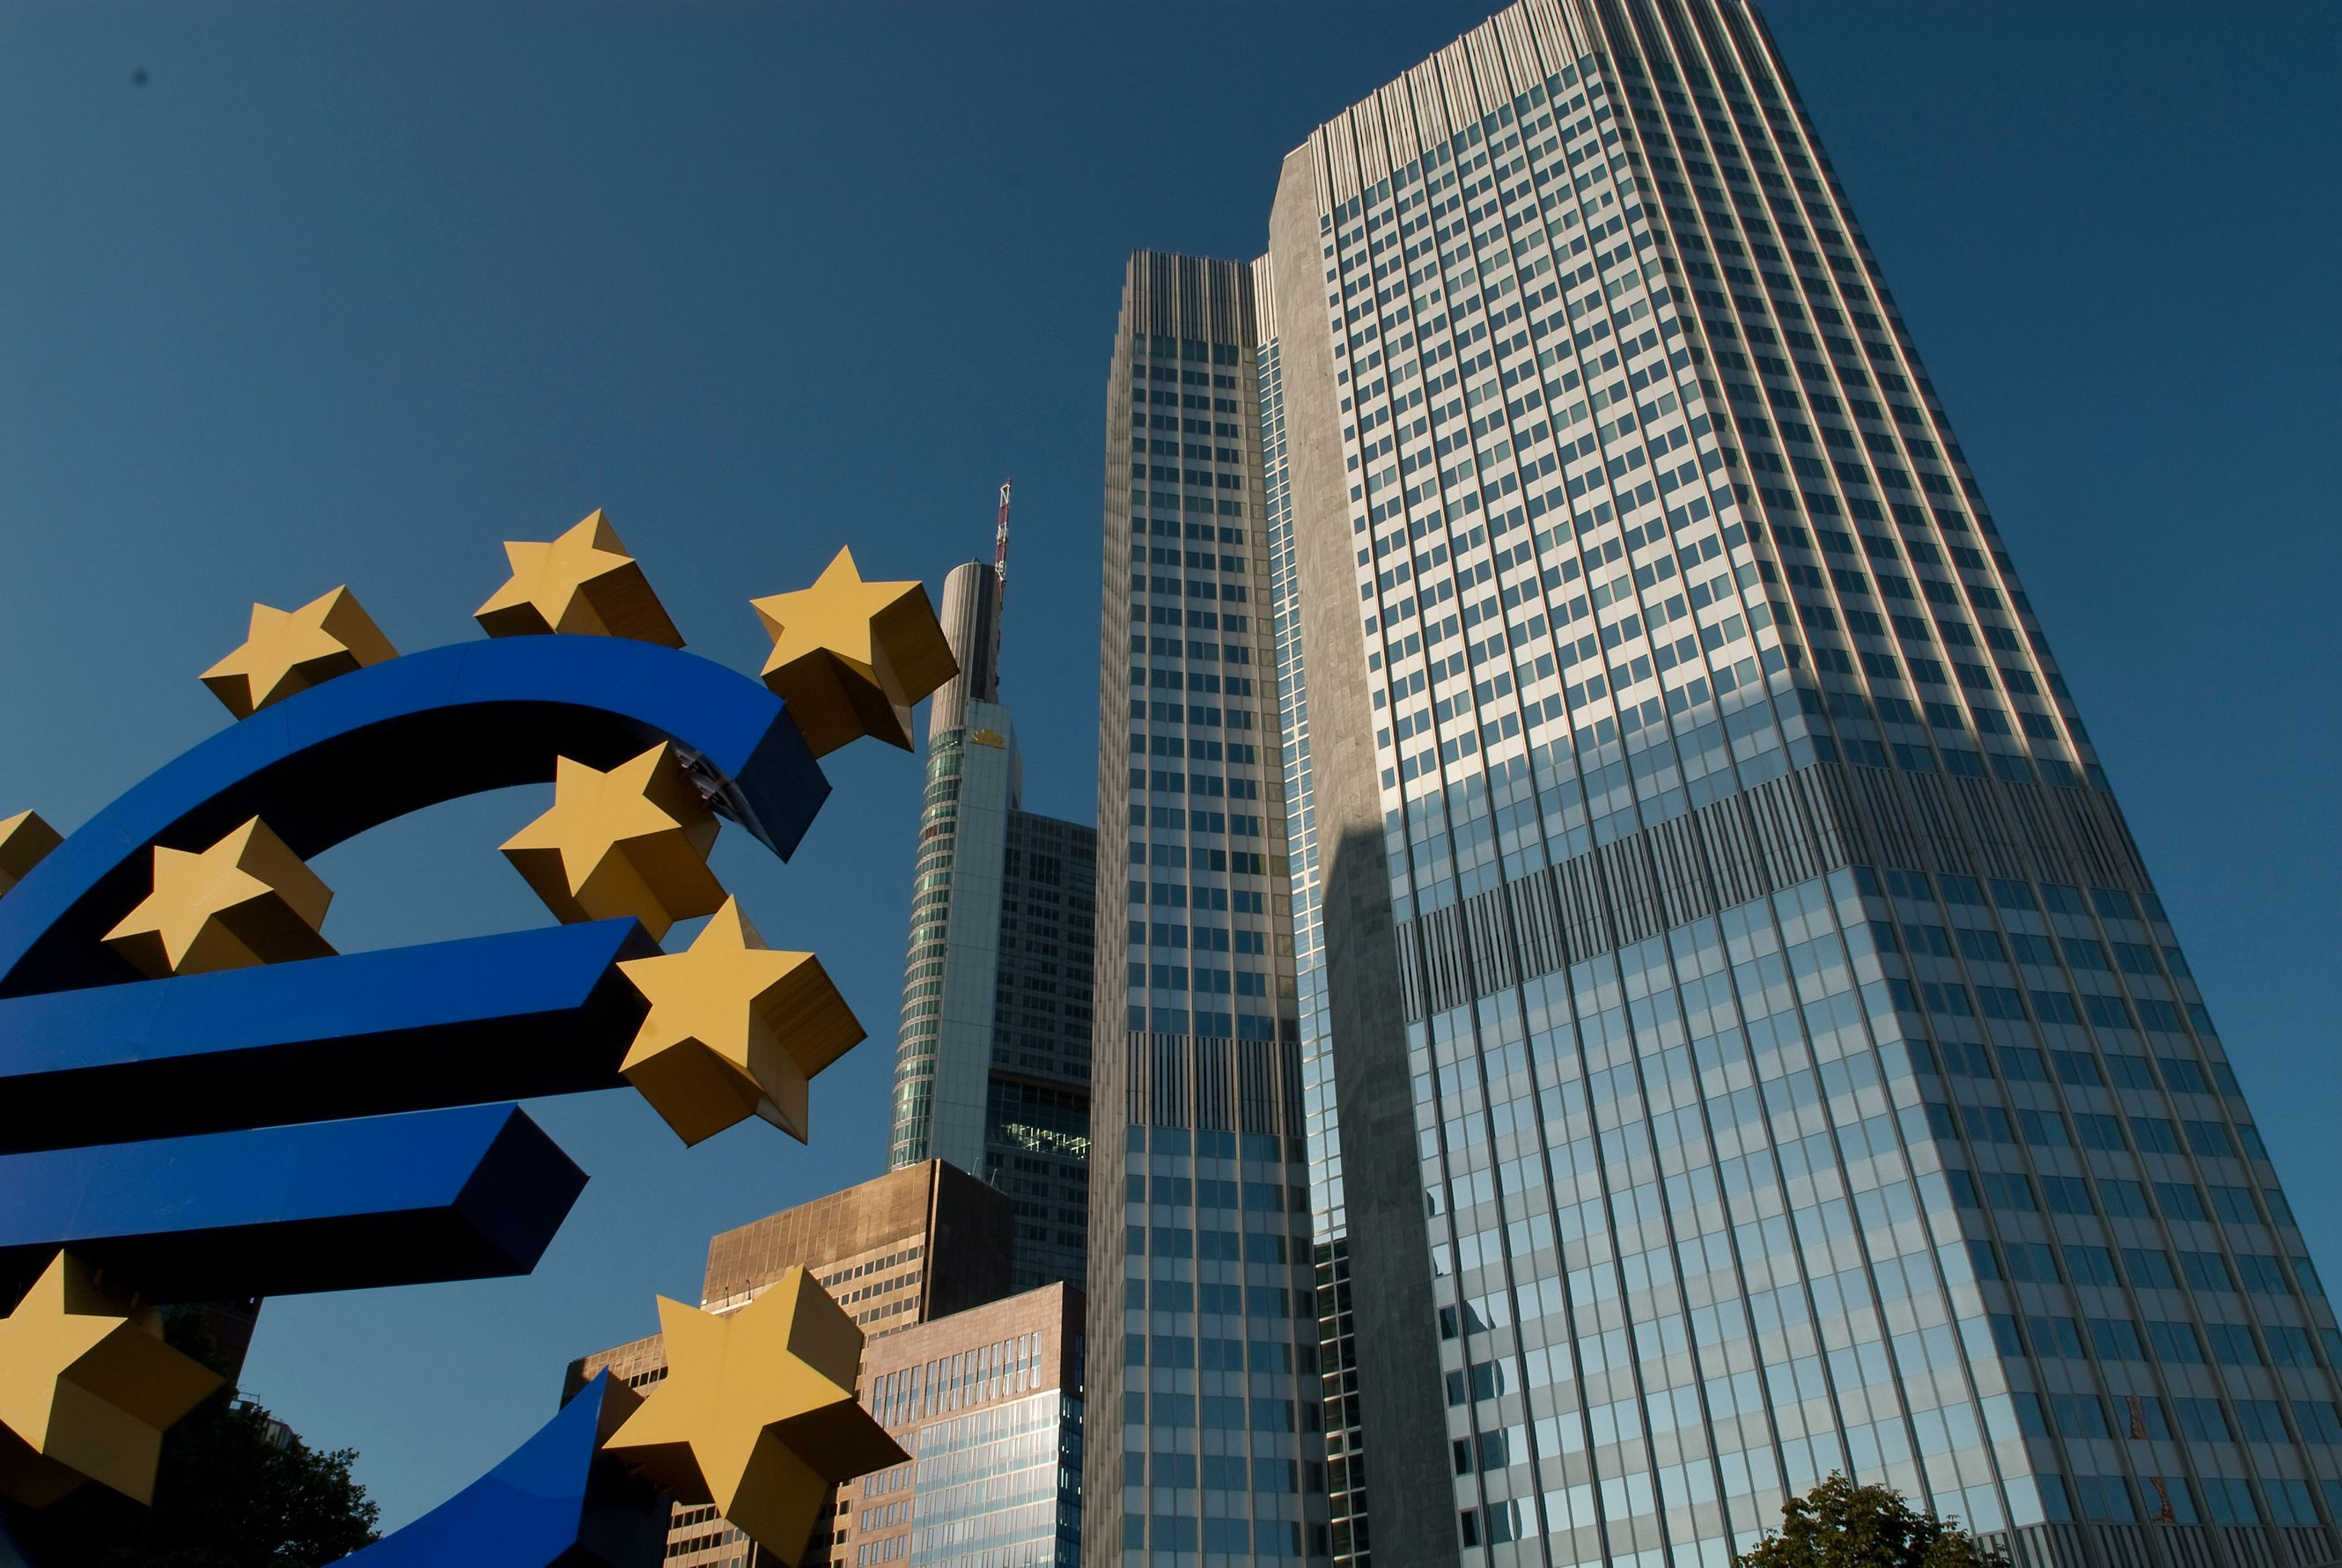 Big blue euro sign in front of tall building